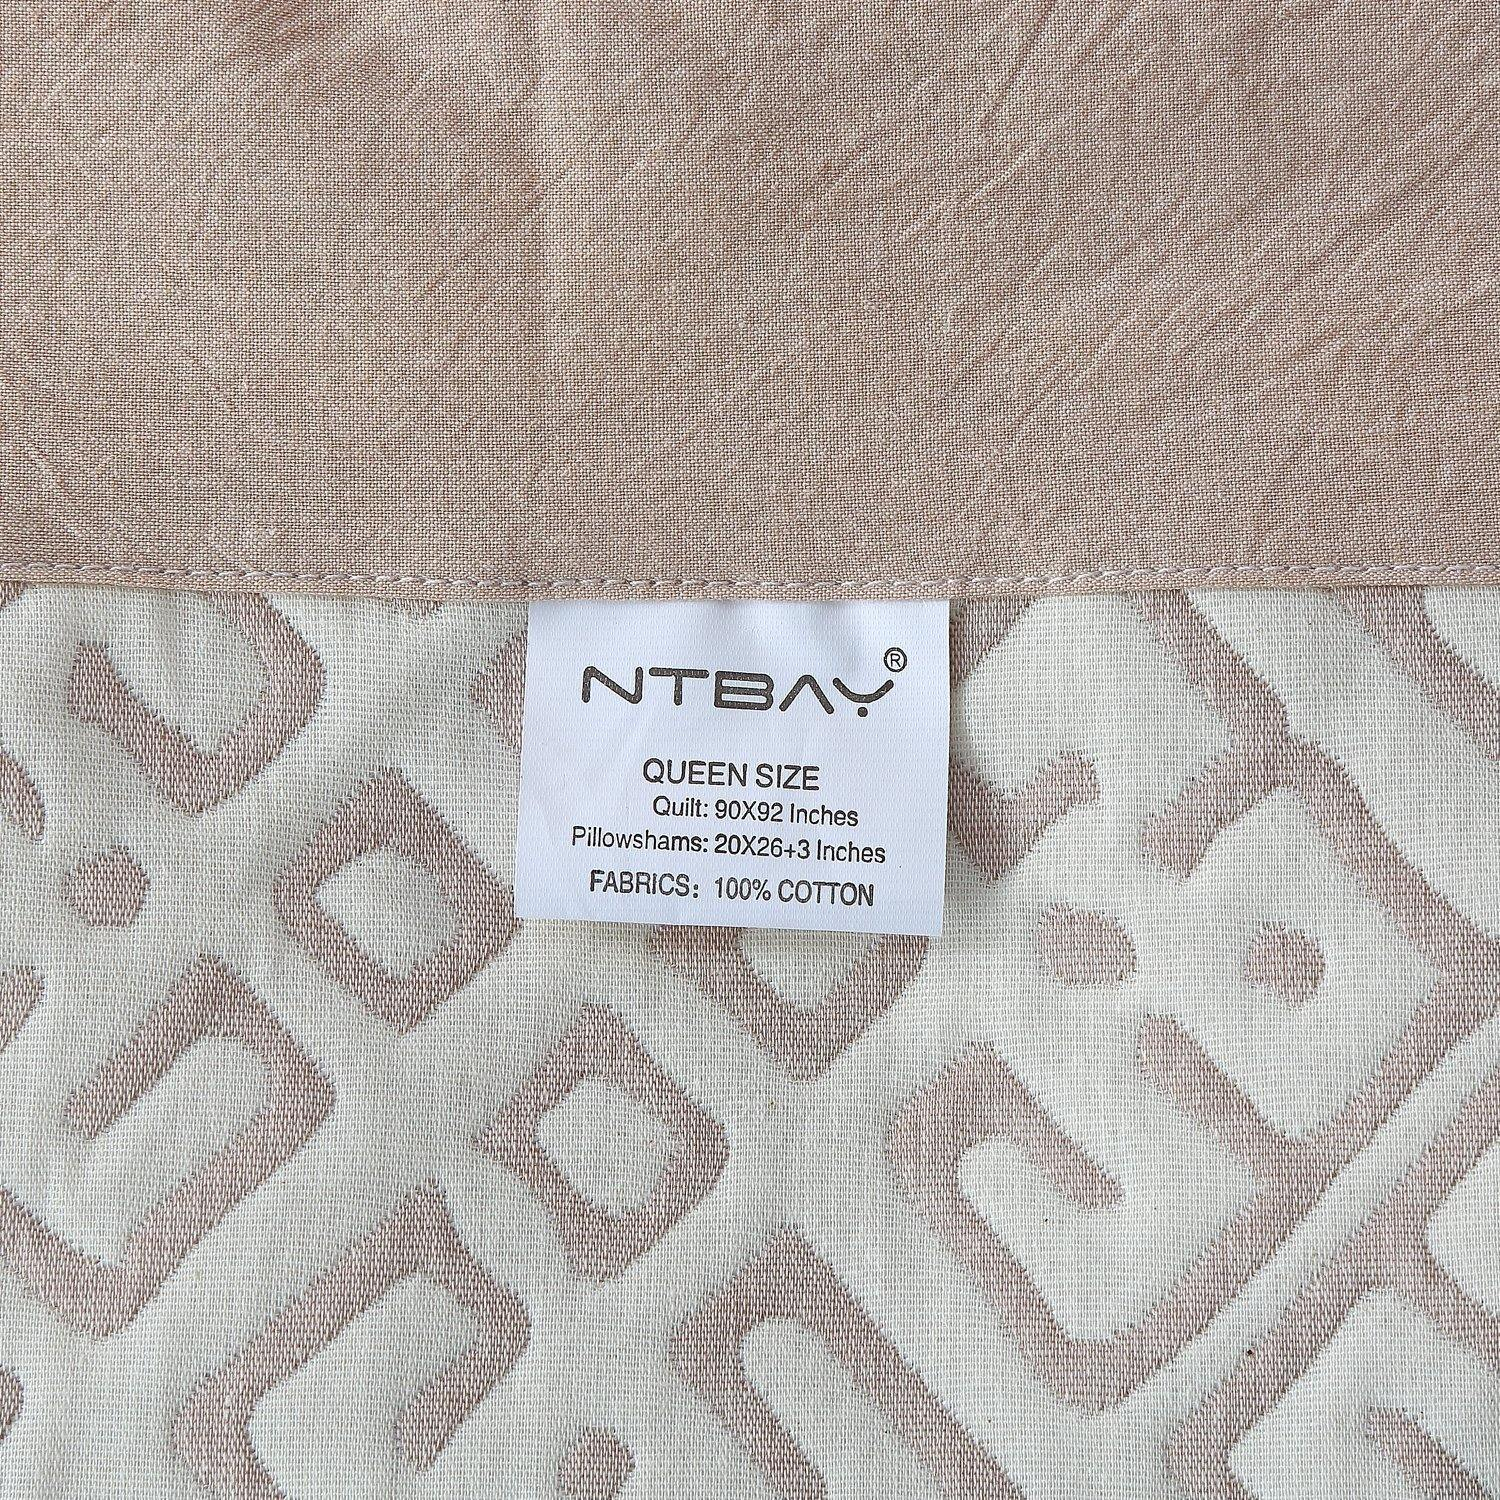 NTBAY 3 Layers Washed Cotton Woven Jacquard Coverlet, Chair Cover, Throw Blankets for Bed Couch - NTBAY